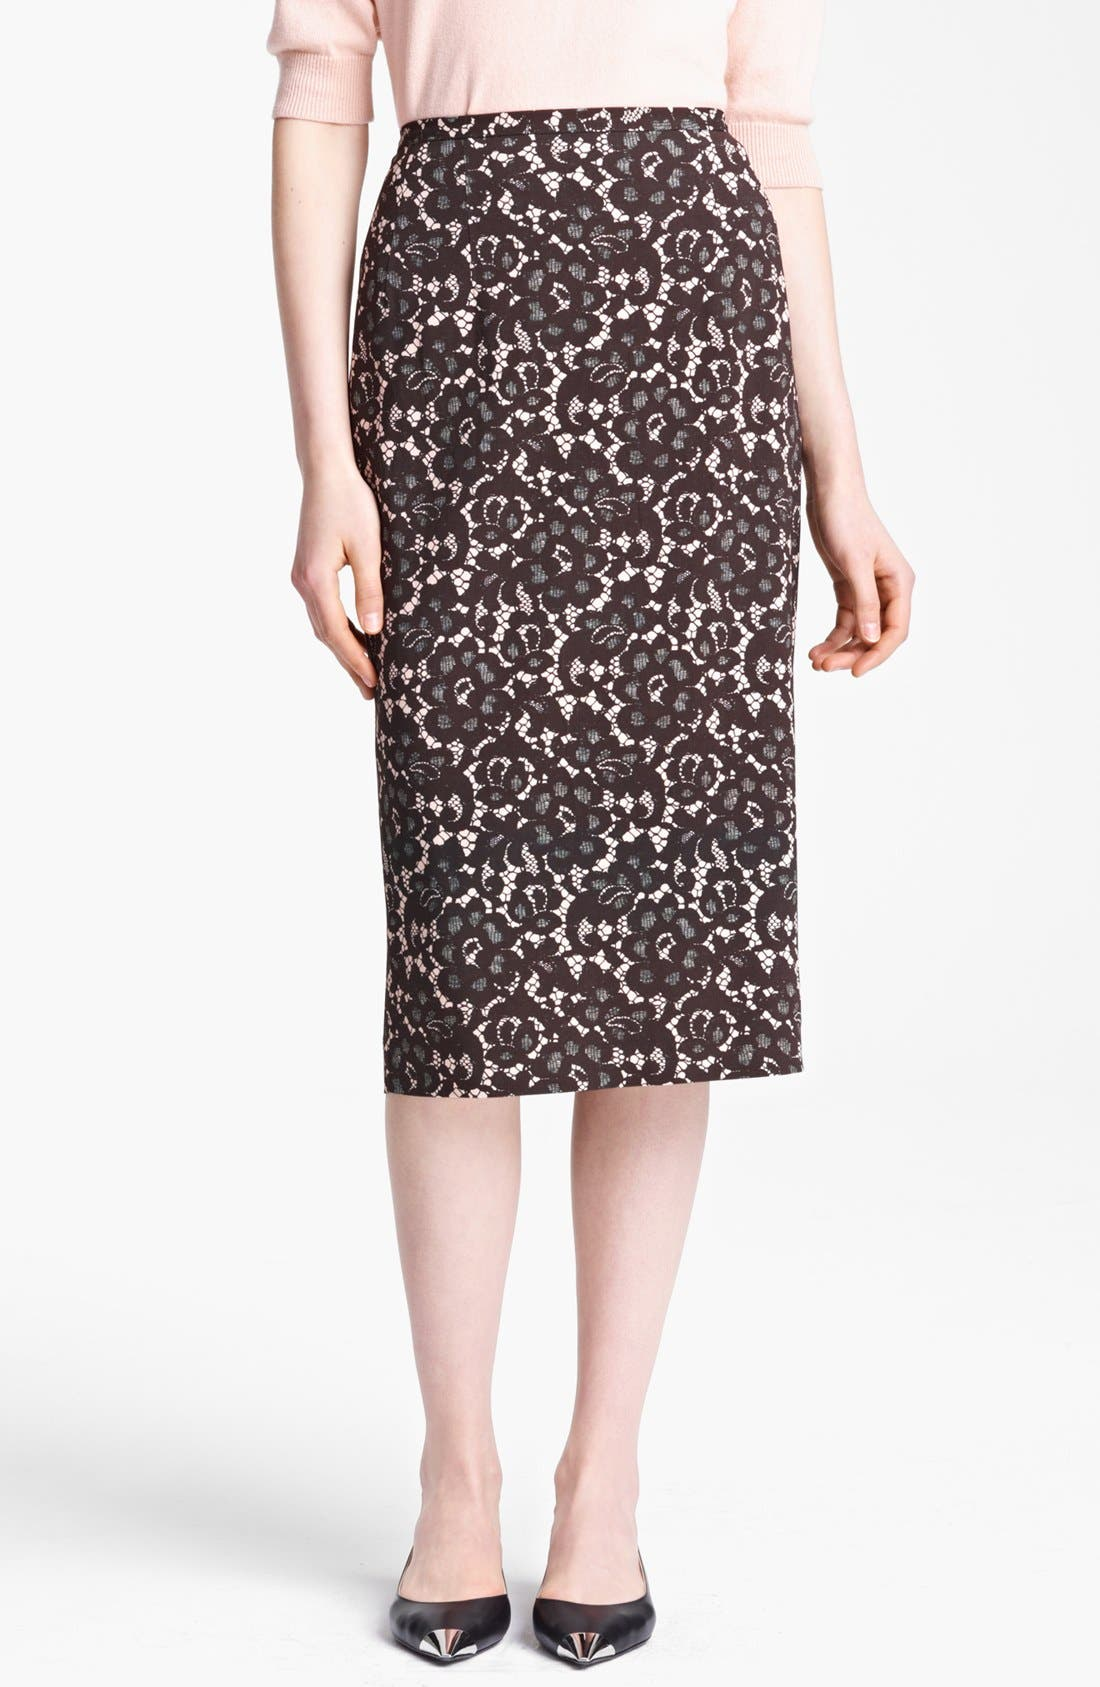 Alternate Image 1 Selected - Michael Kors Guipure Print Stretch Cady Pencil Skirt